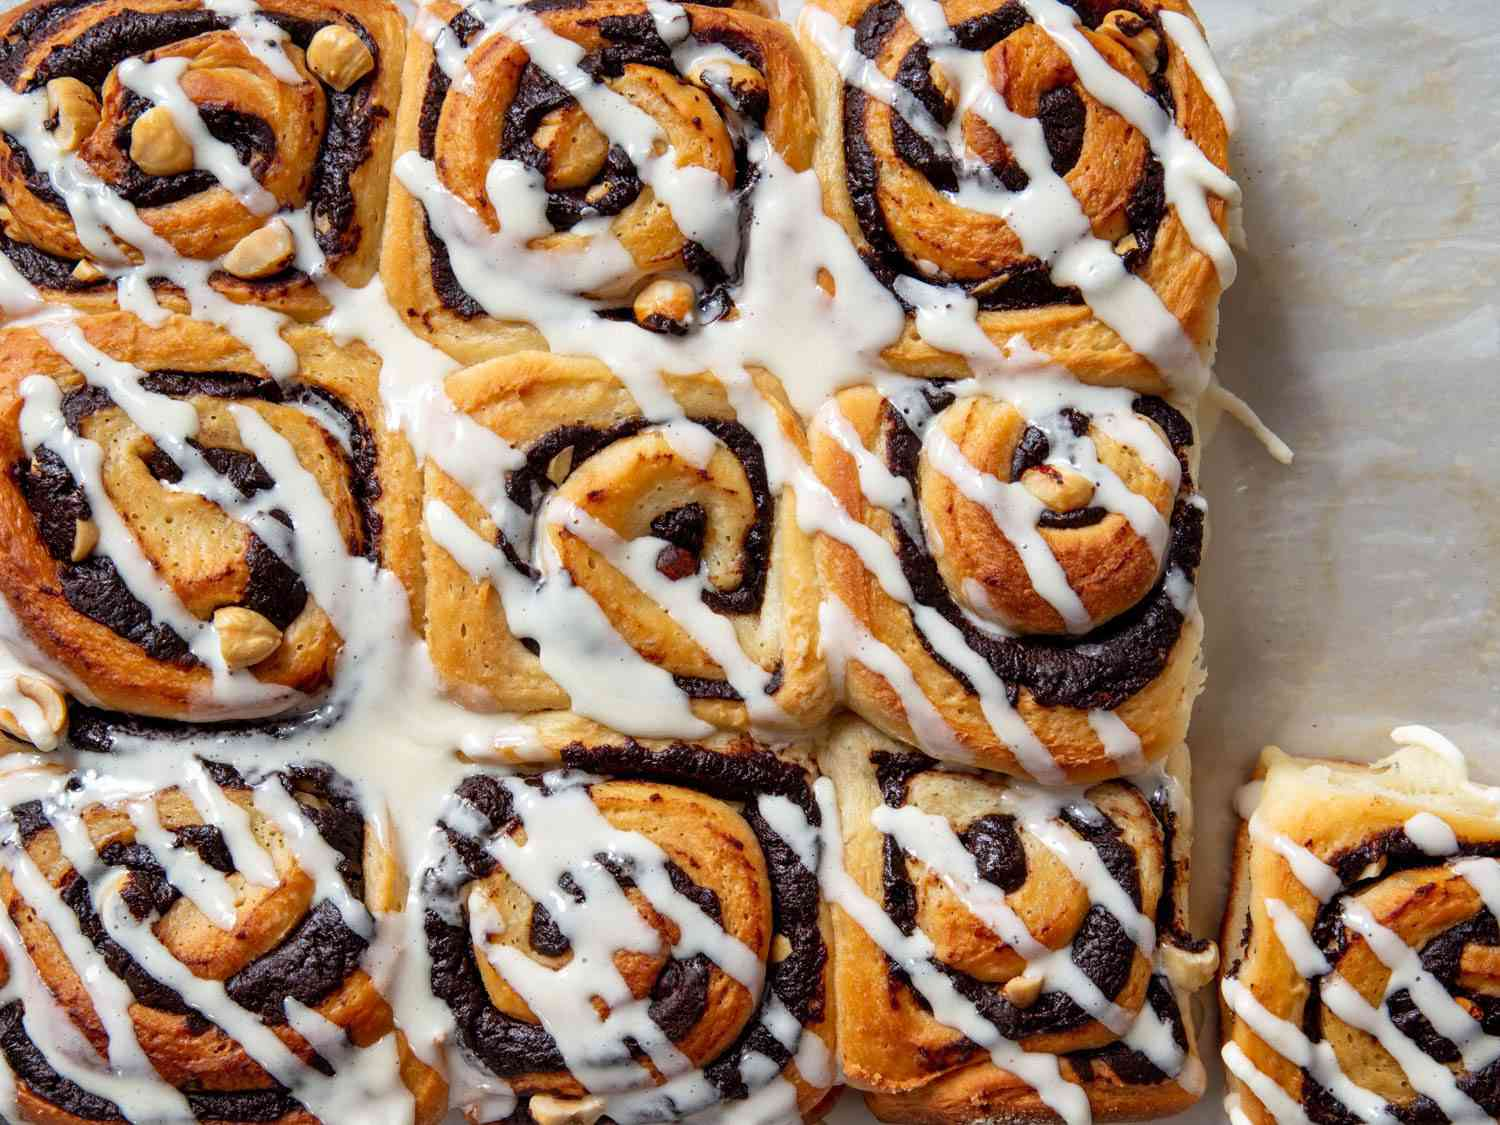 a tray of chocolate hazelnut buns drizzled with frosting